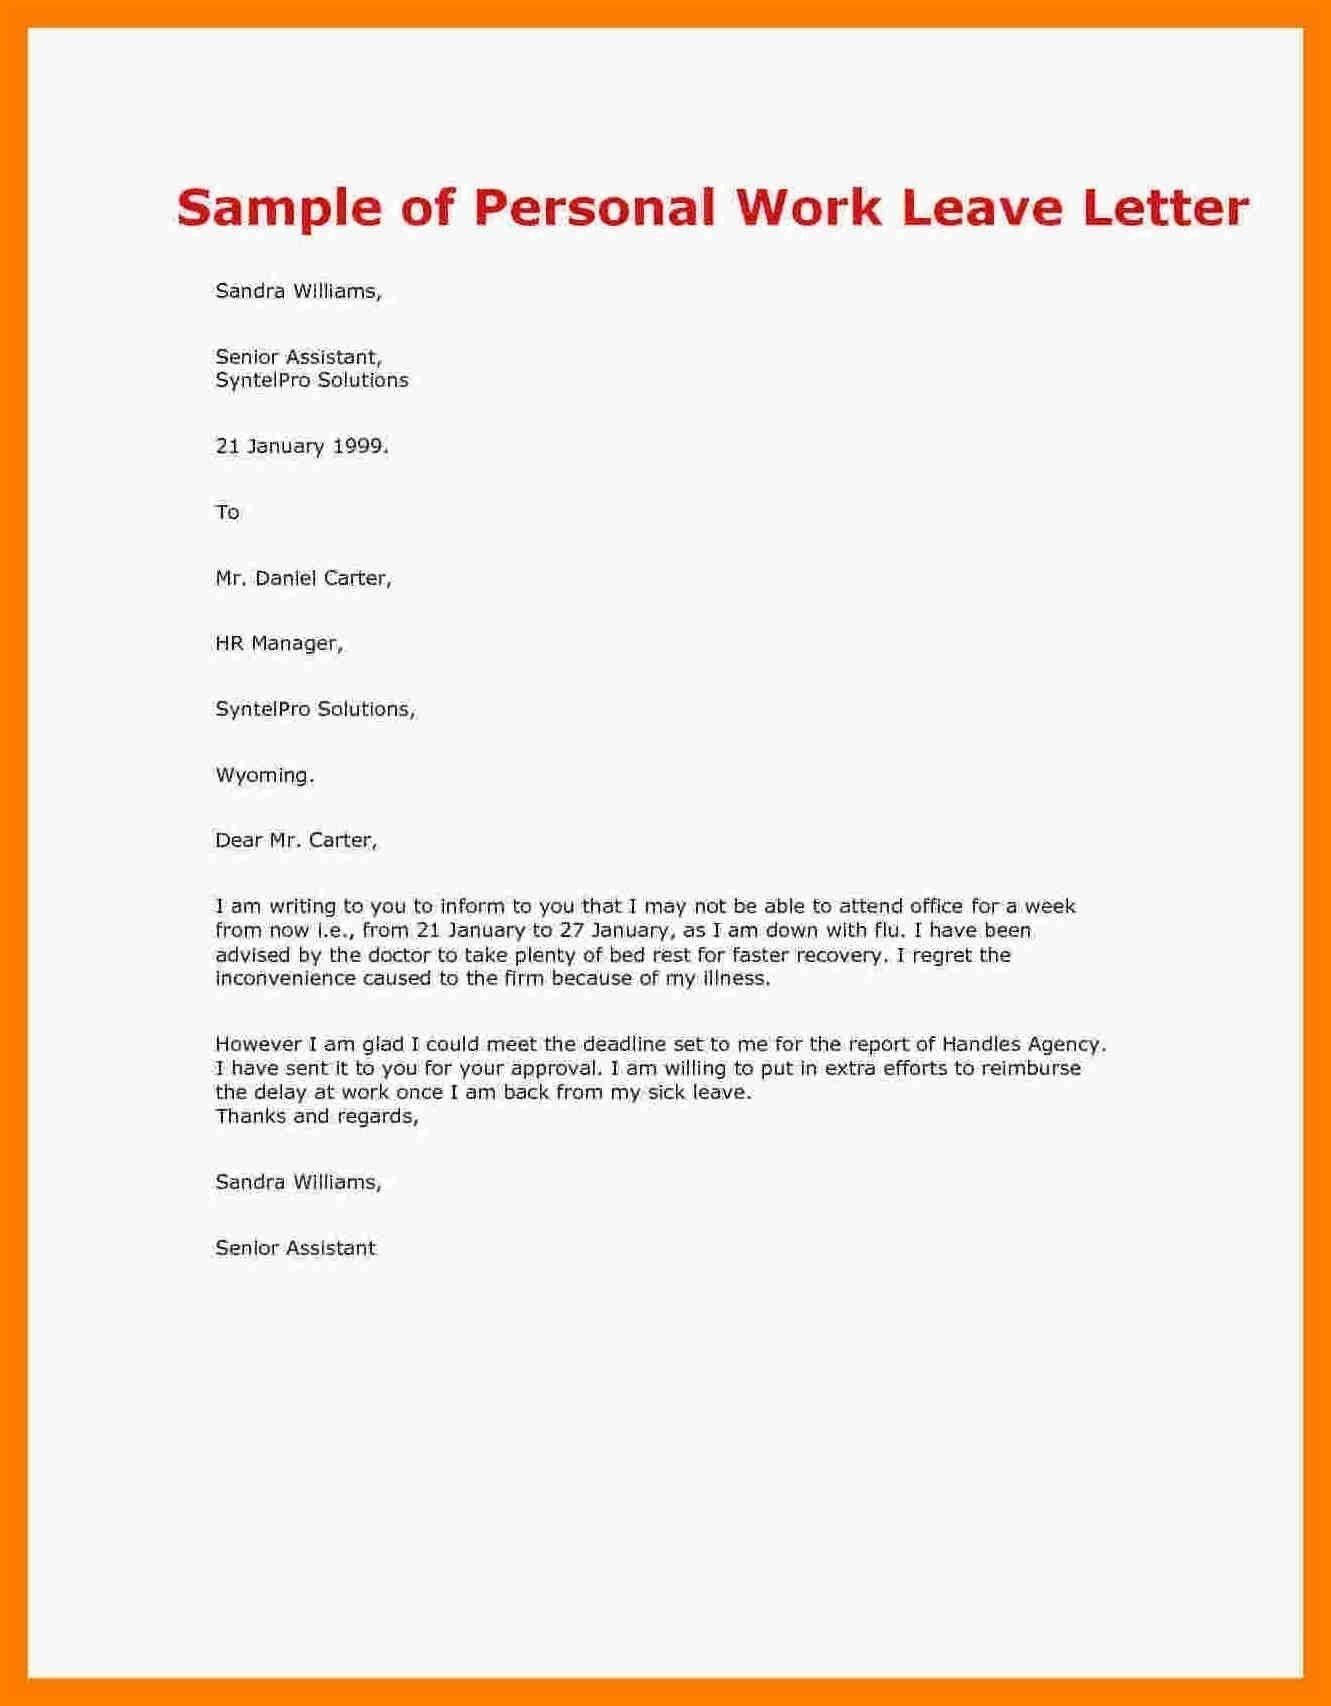 You Can See This Valid Request For Regularization Letter Format At Http Creativecommuni Lettering Business Letter Template Professional Cover Letter Template